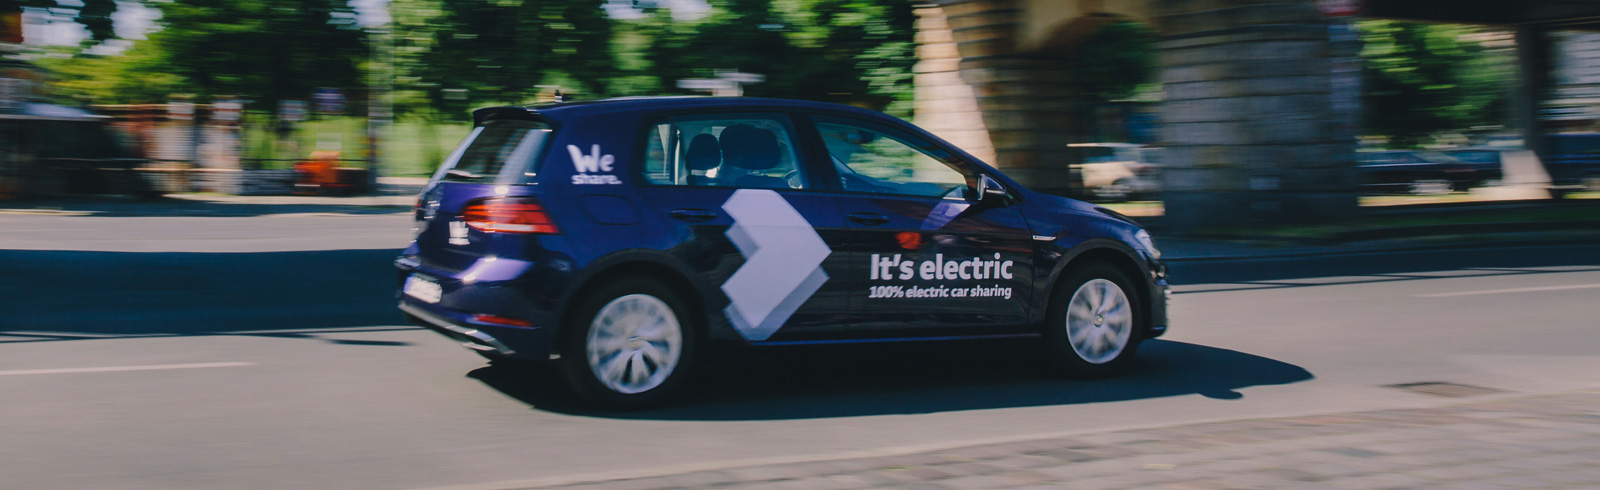 Volkswagen WeShare with a full-electric fleet is launched in Berlin